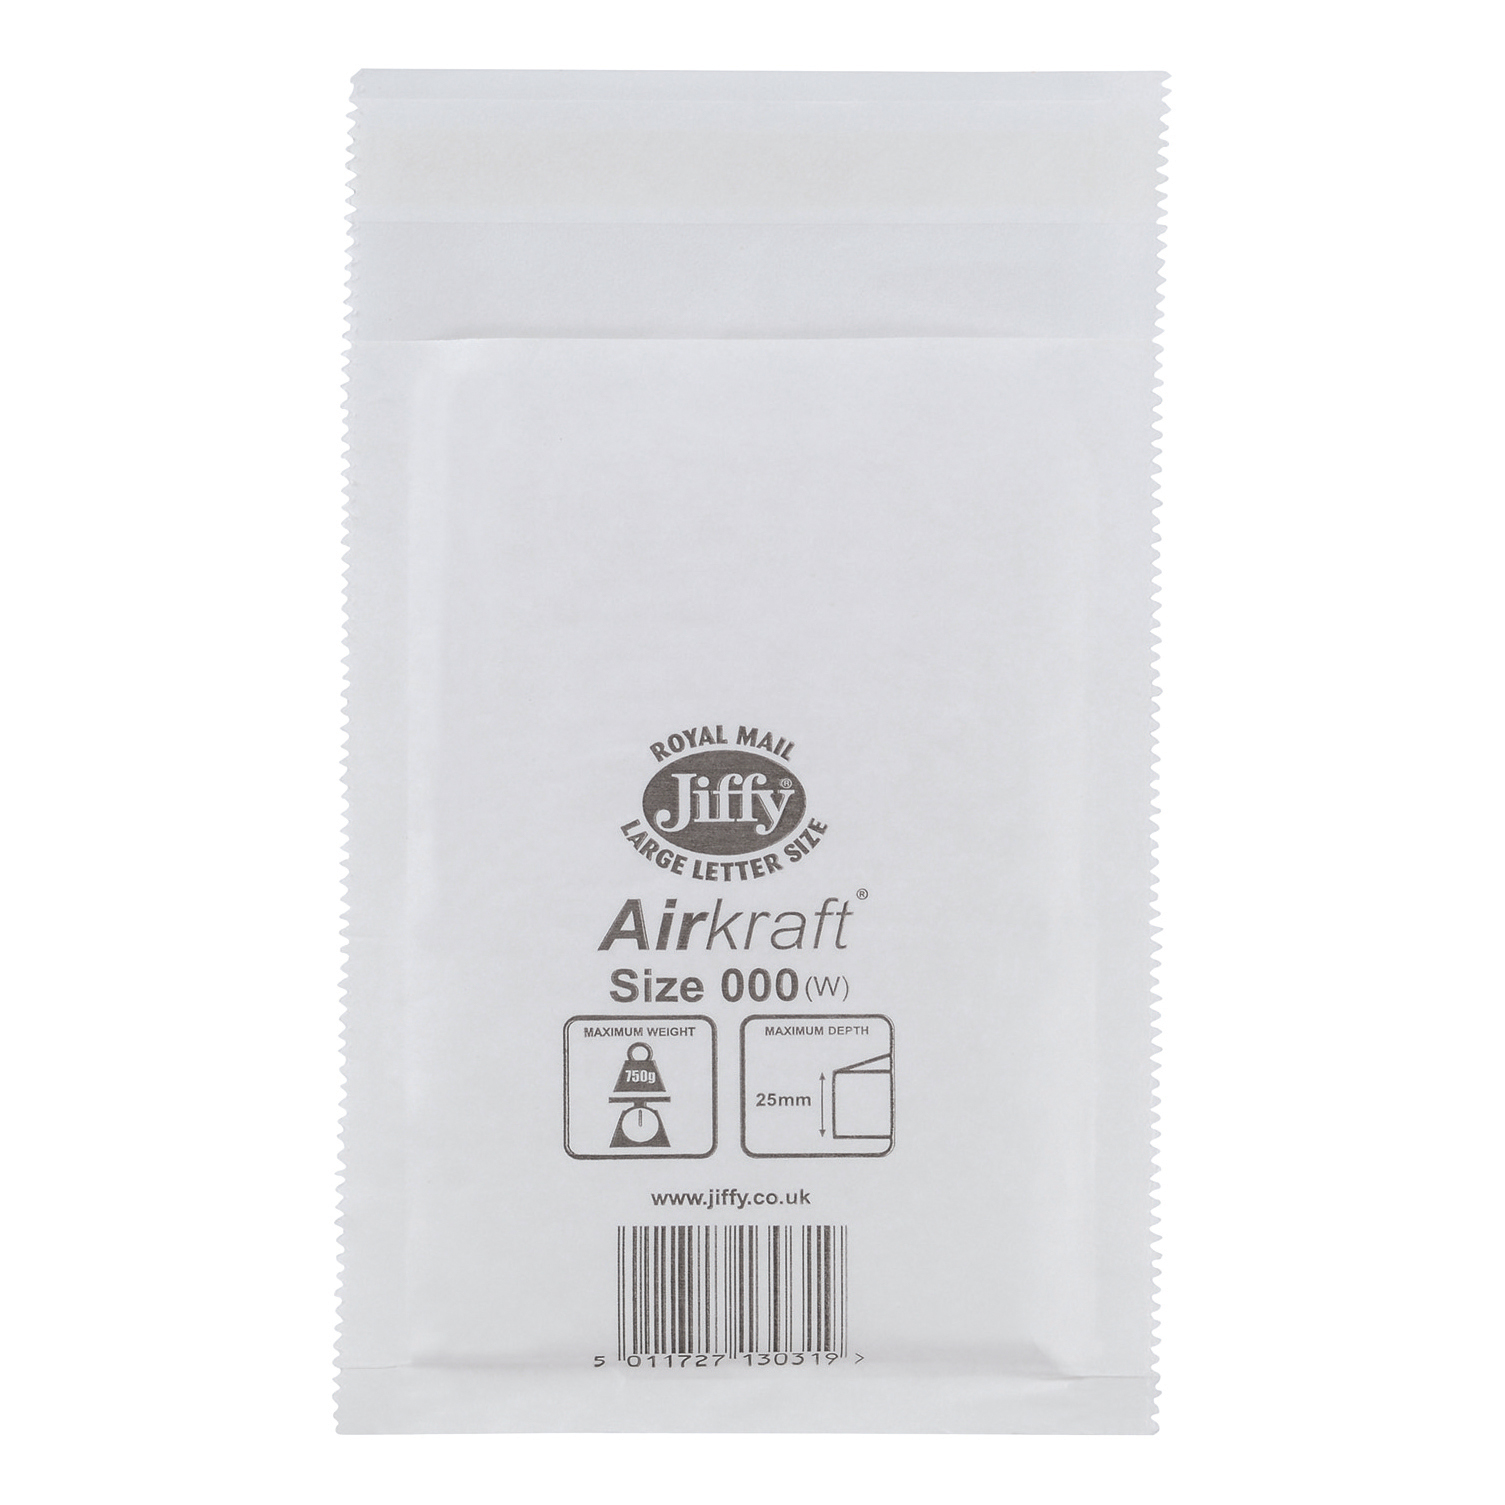 Jiffy Airkraft Postal Bags Bubble-lined Size 000 Peel and Seal 90x145mm White Ref JL-000 [Pack 150]